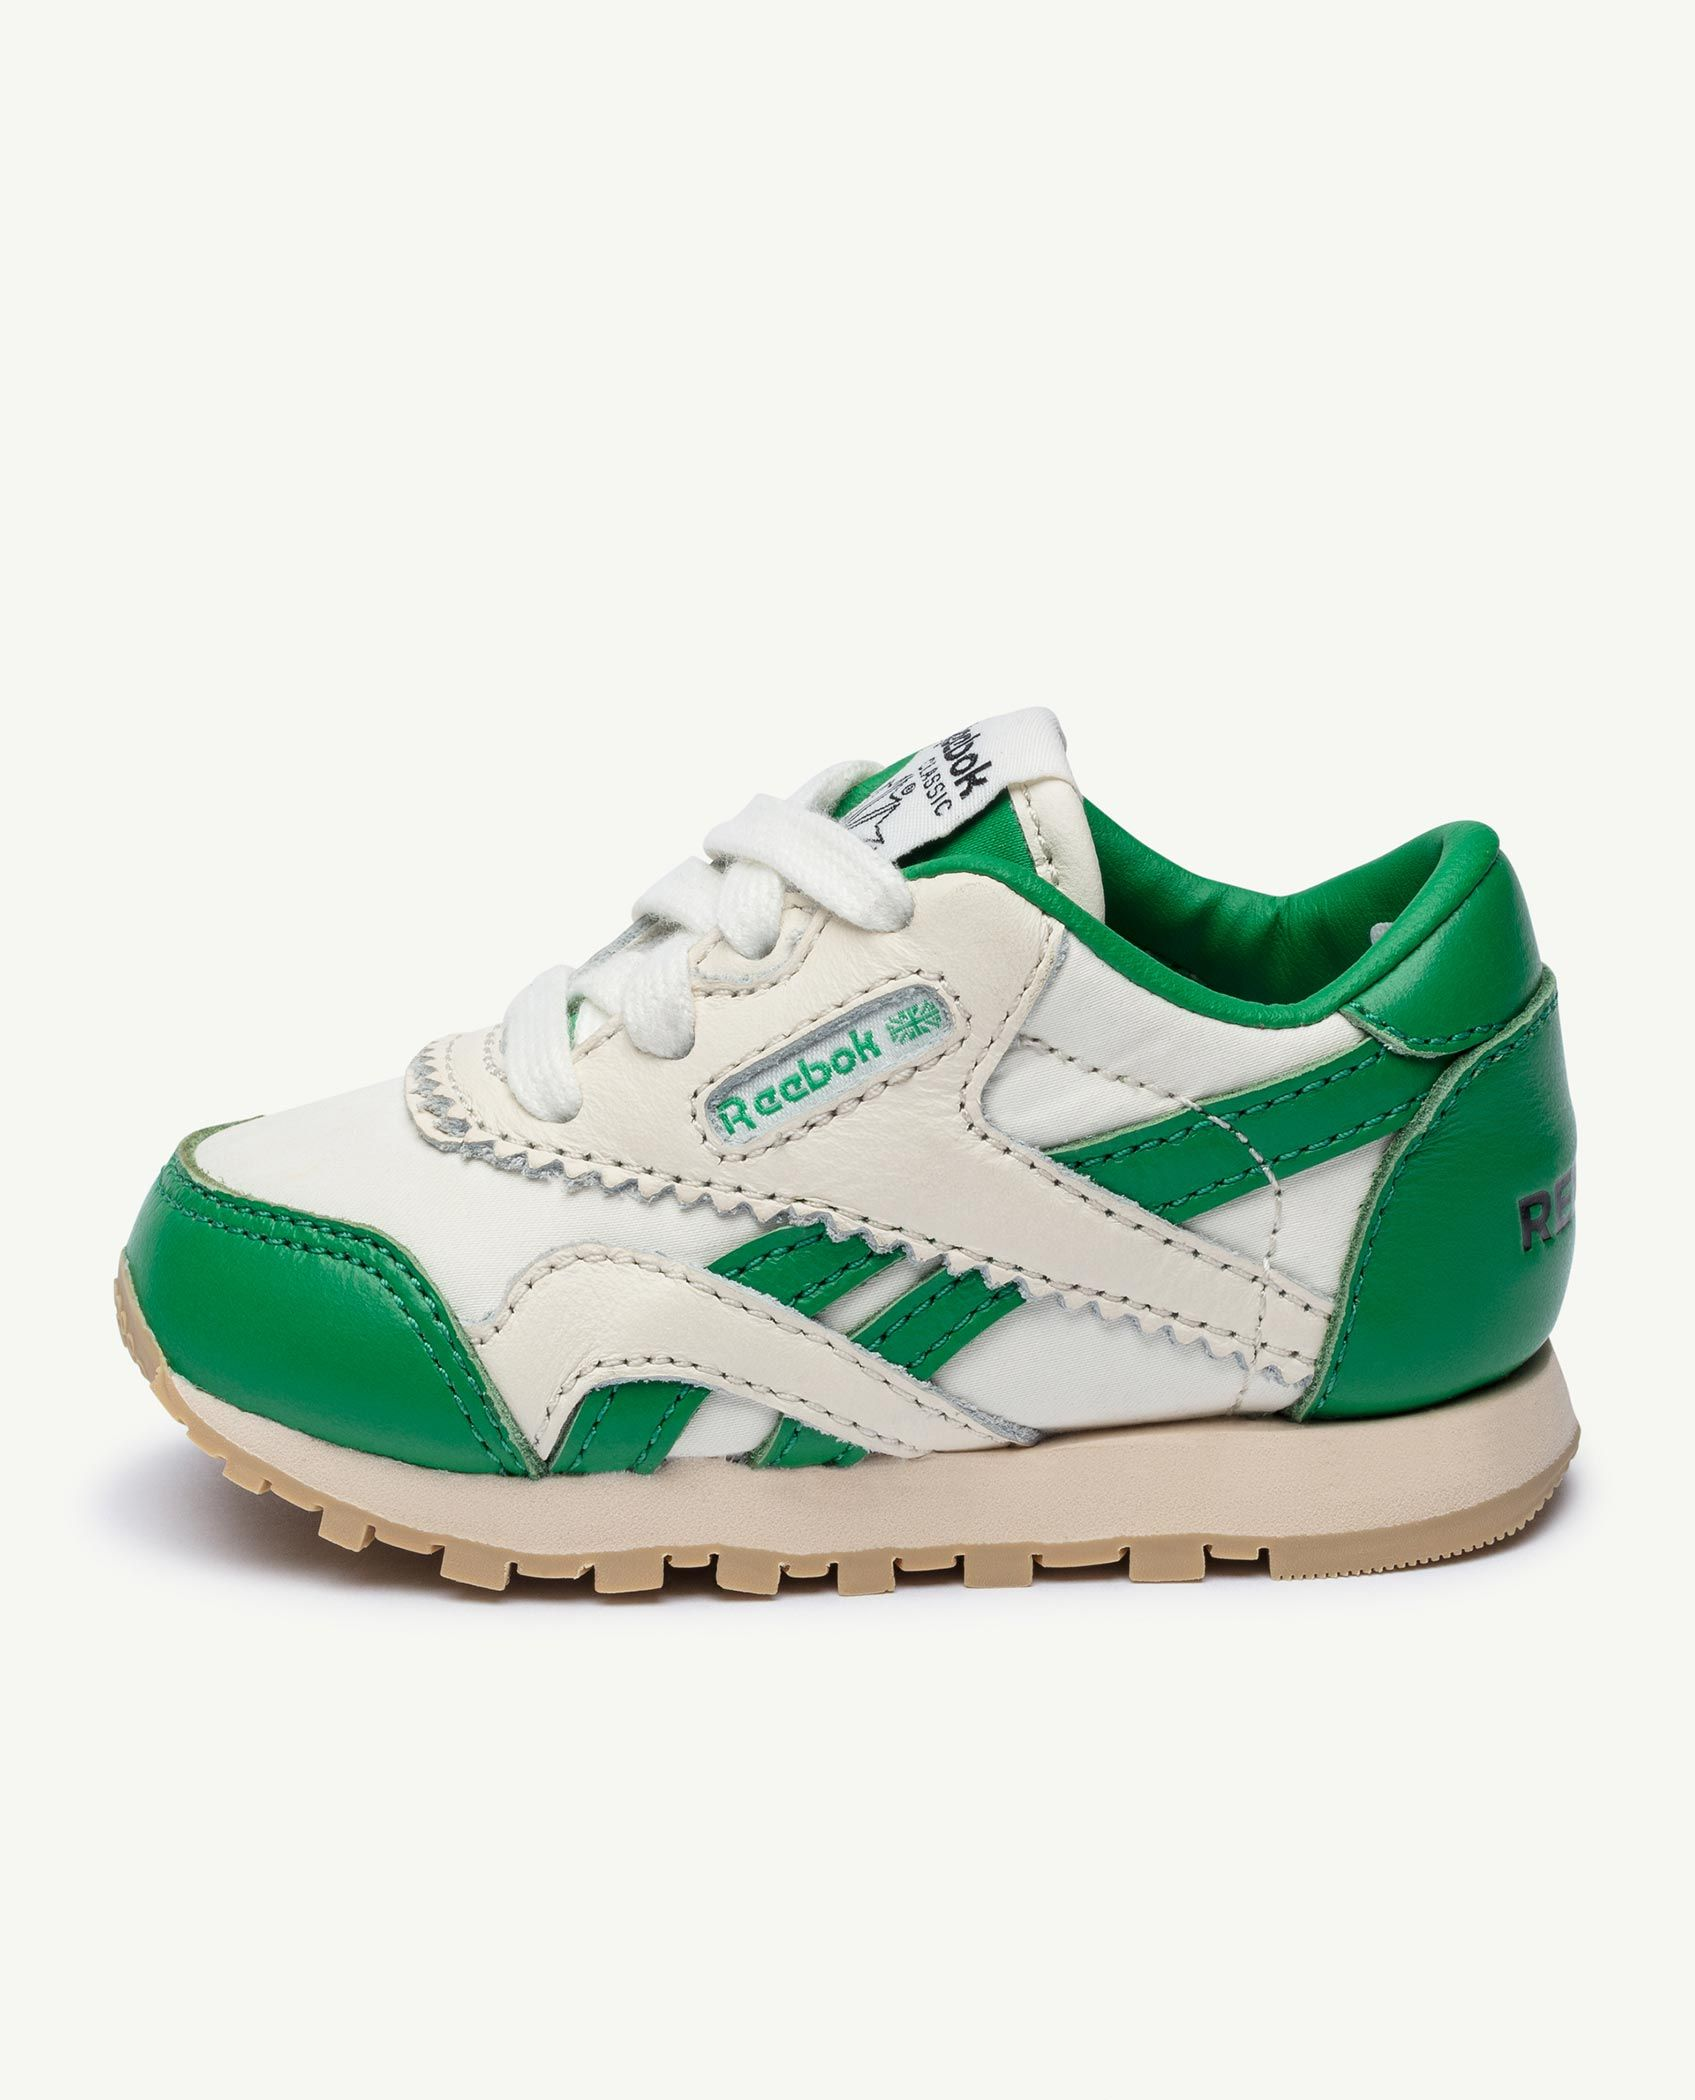 Reebok x The Animals Observatory Classic Nylon Green Baby img-1